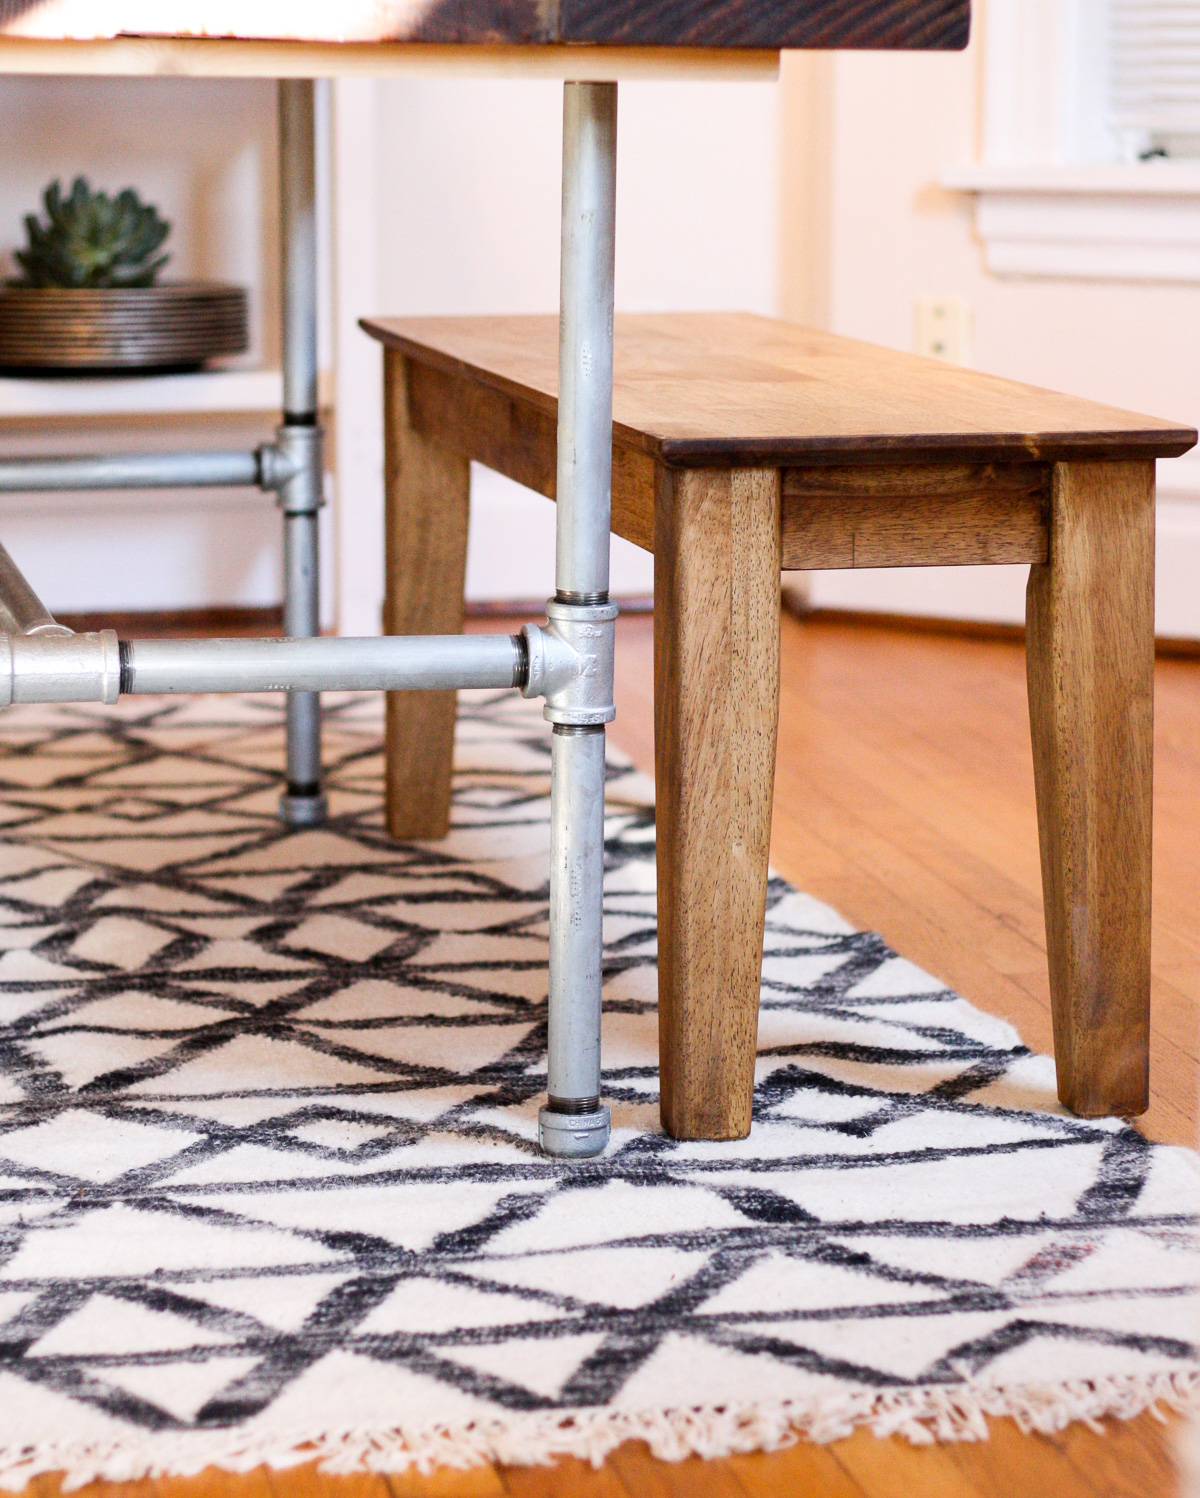 West elm rugs_DIY Dining room table